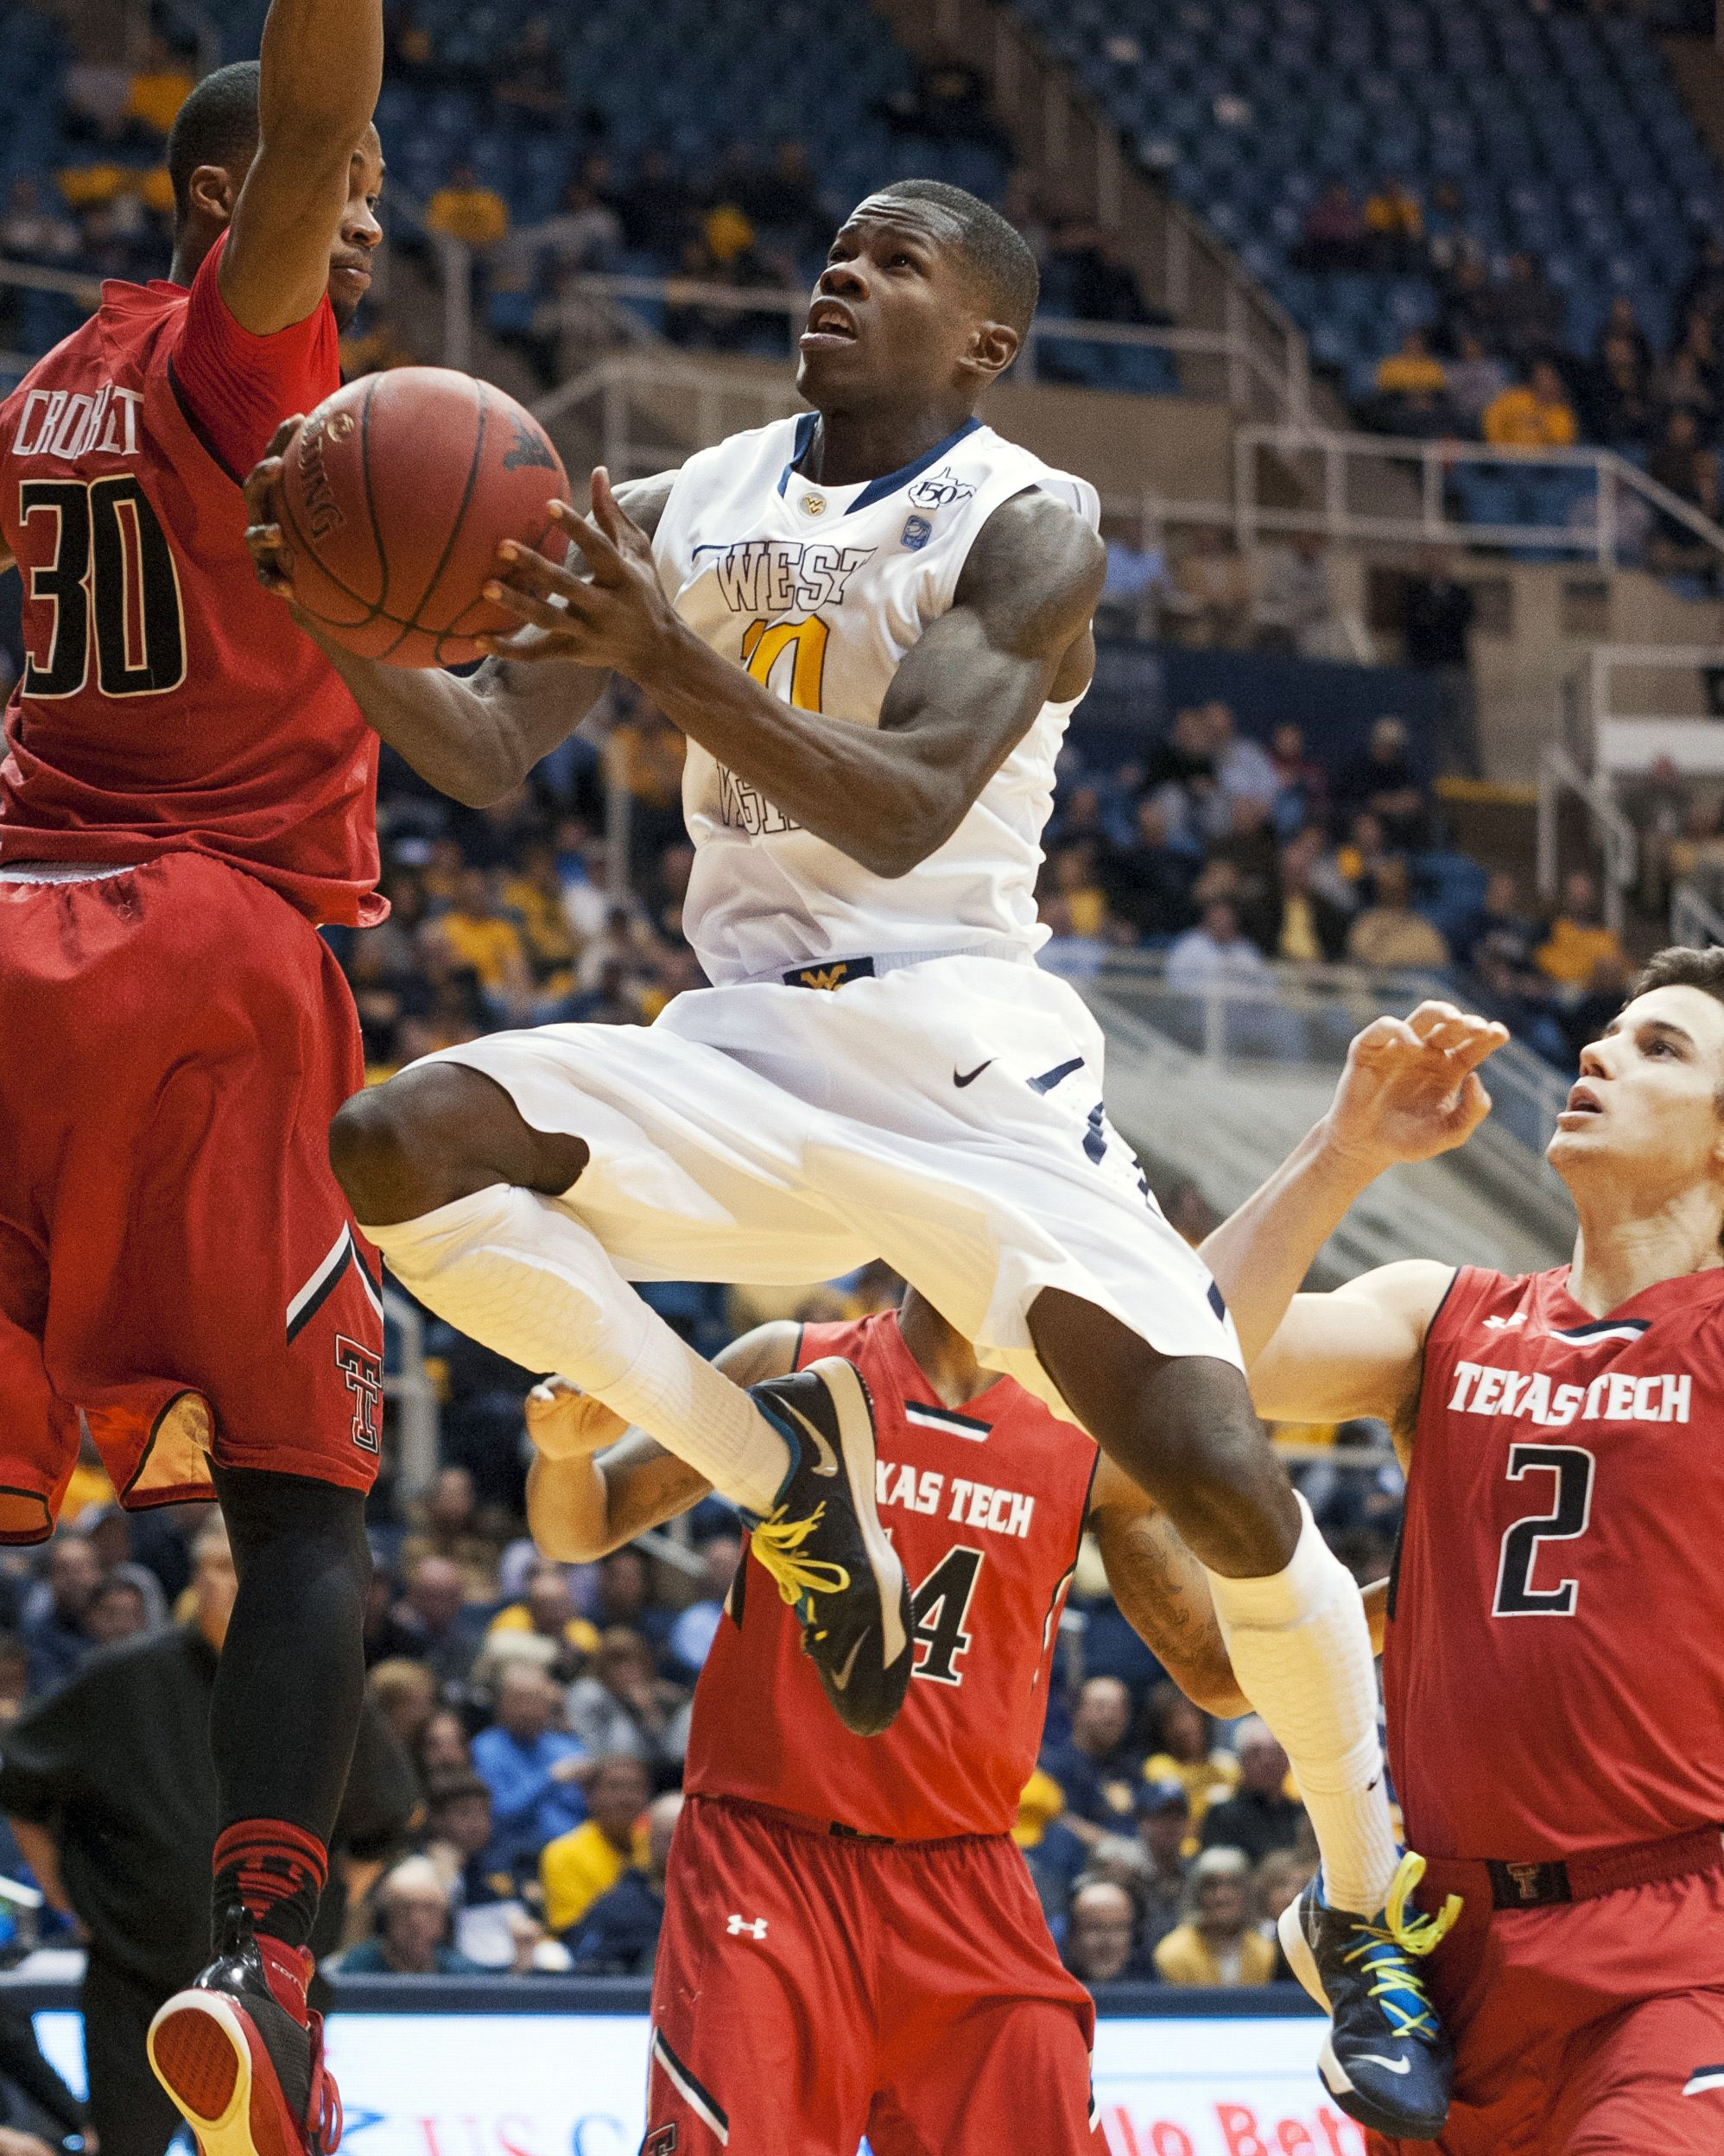 Jan. 22, 2013 — West Virginia 87, Texas Tech 81 (Photo